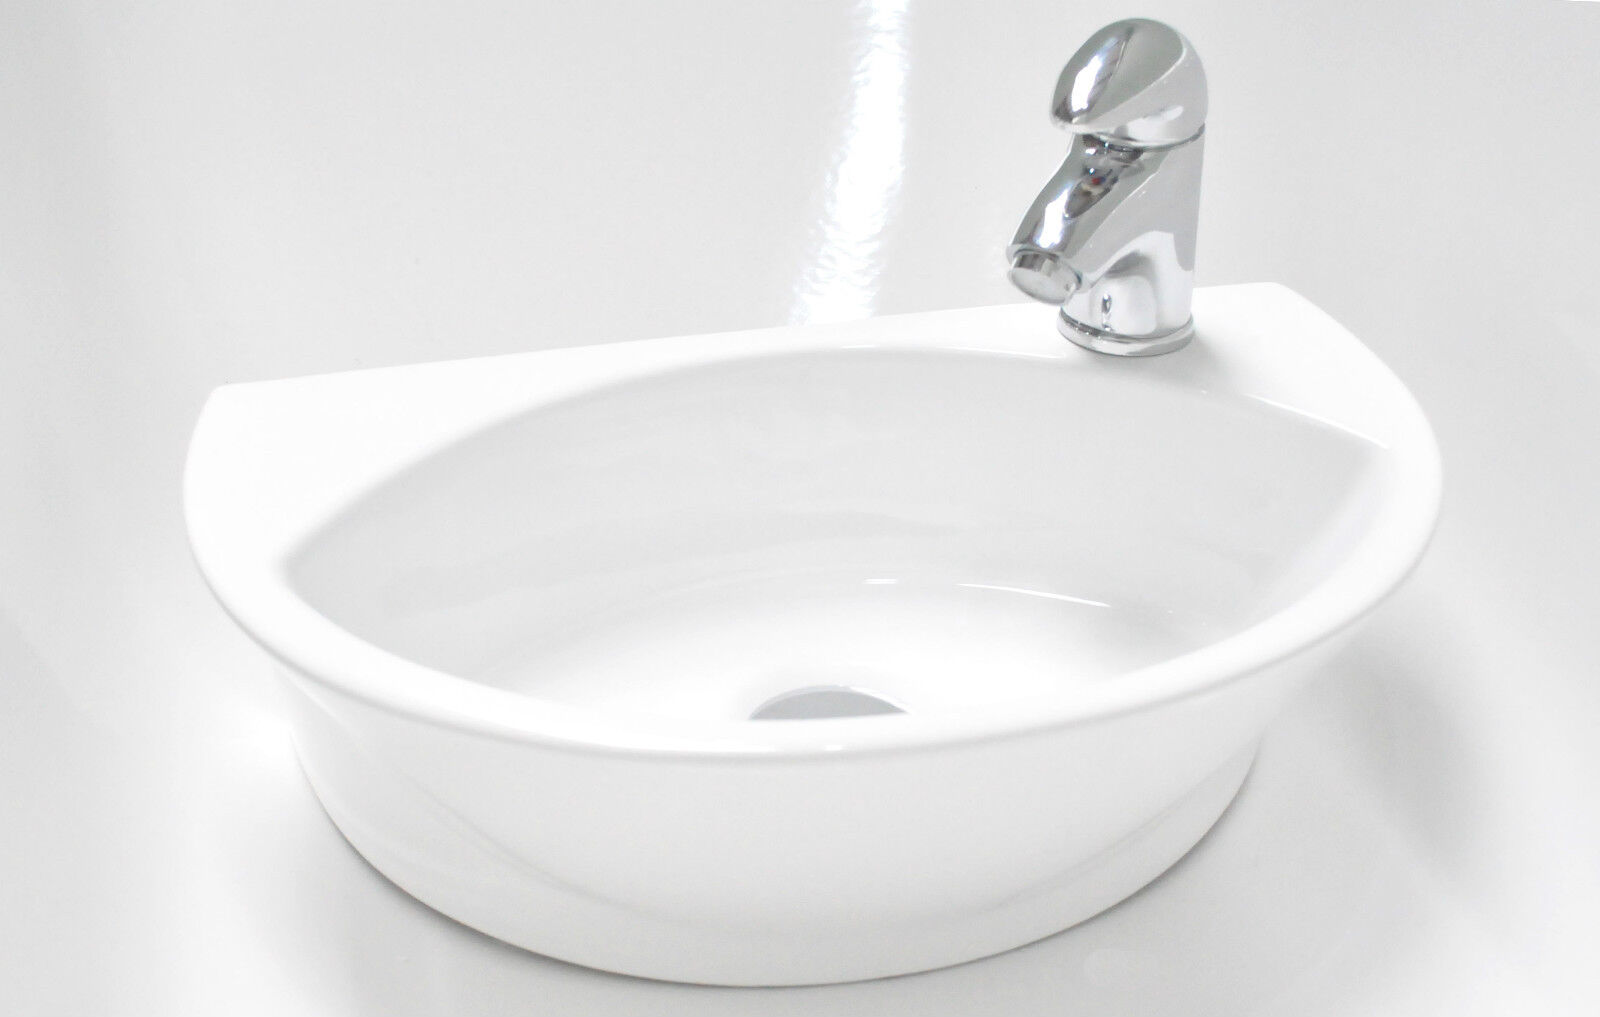 Compact Bathroom Sink : Small Compact Round D Shaped Cloakroom Basin Bathroom Sink Wall Hung ...